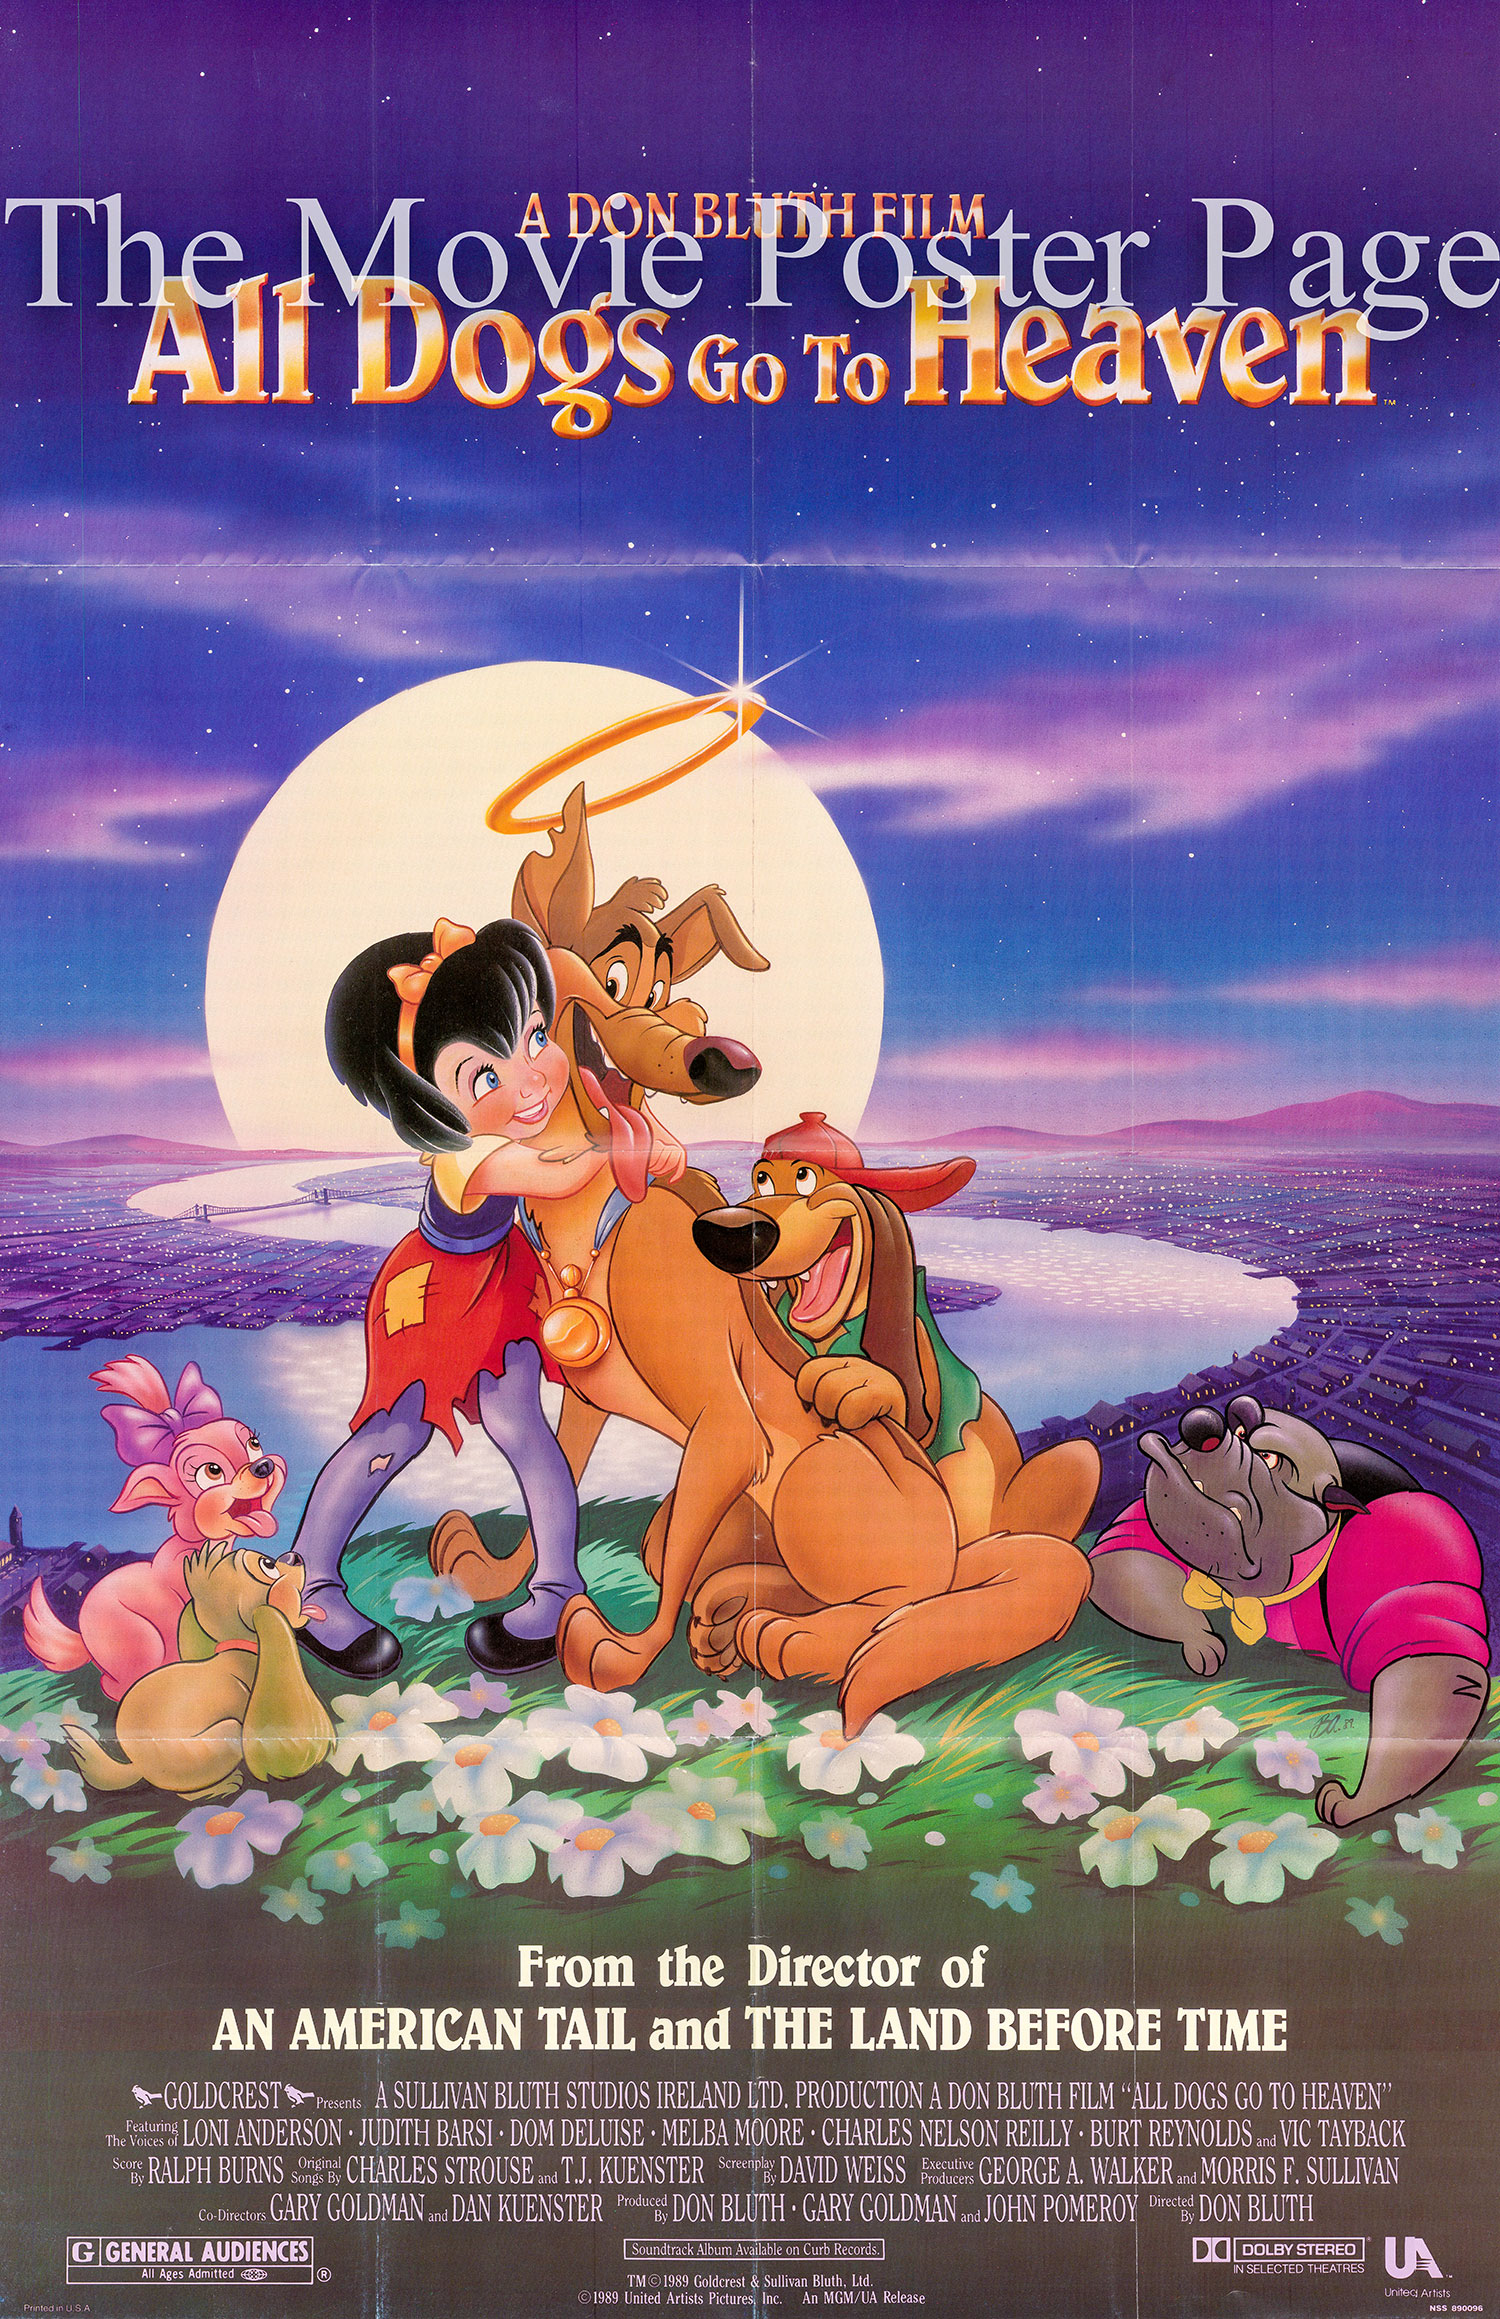 Pictured is a US one-sheet promotional poster for the 1989 Don Bluth and Gary Goldman film <i>All Dogs Go to Heaven</i> starring Burt Reynolds as the voice of Charlie B. Barkin.